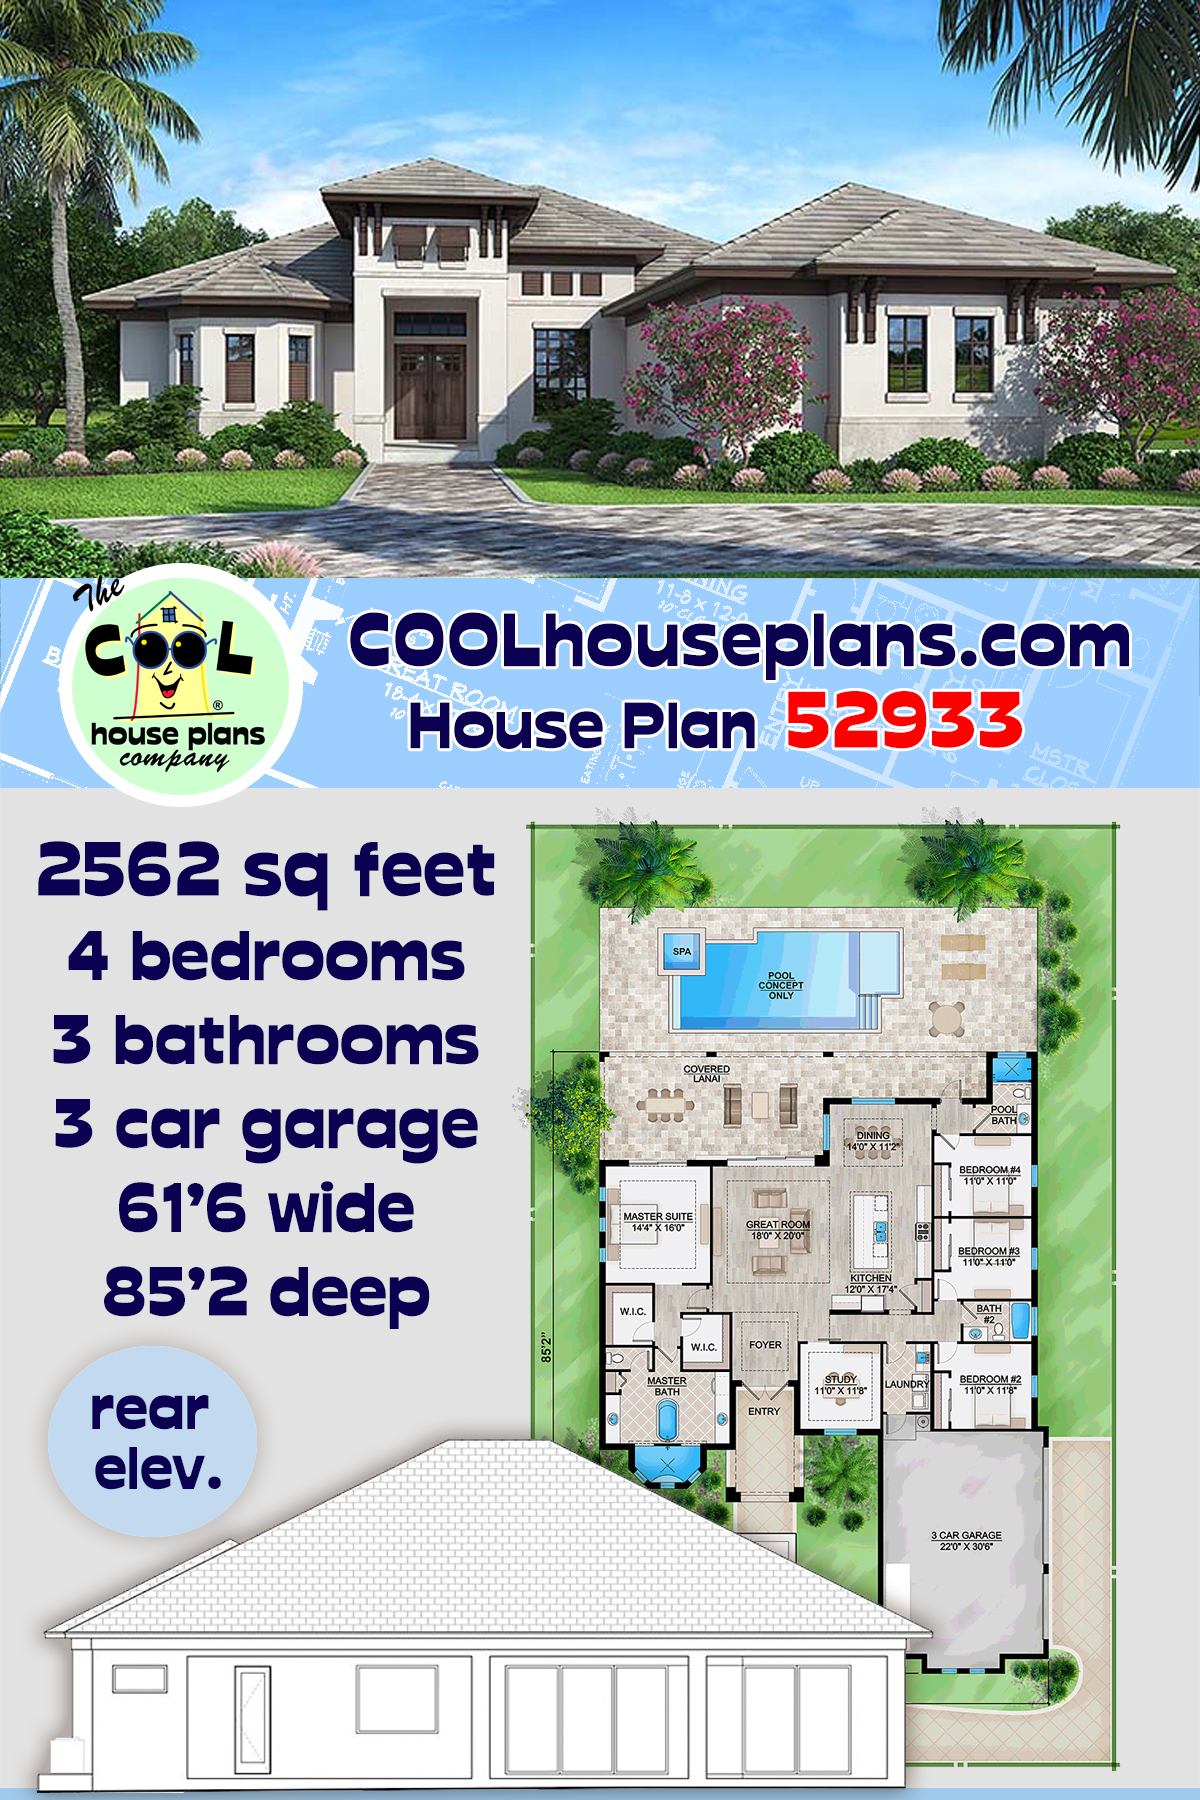 House Plan 52933 - Mediterranean Style with 2562 Sq Ft, 4 Bed, 3 Bath